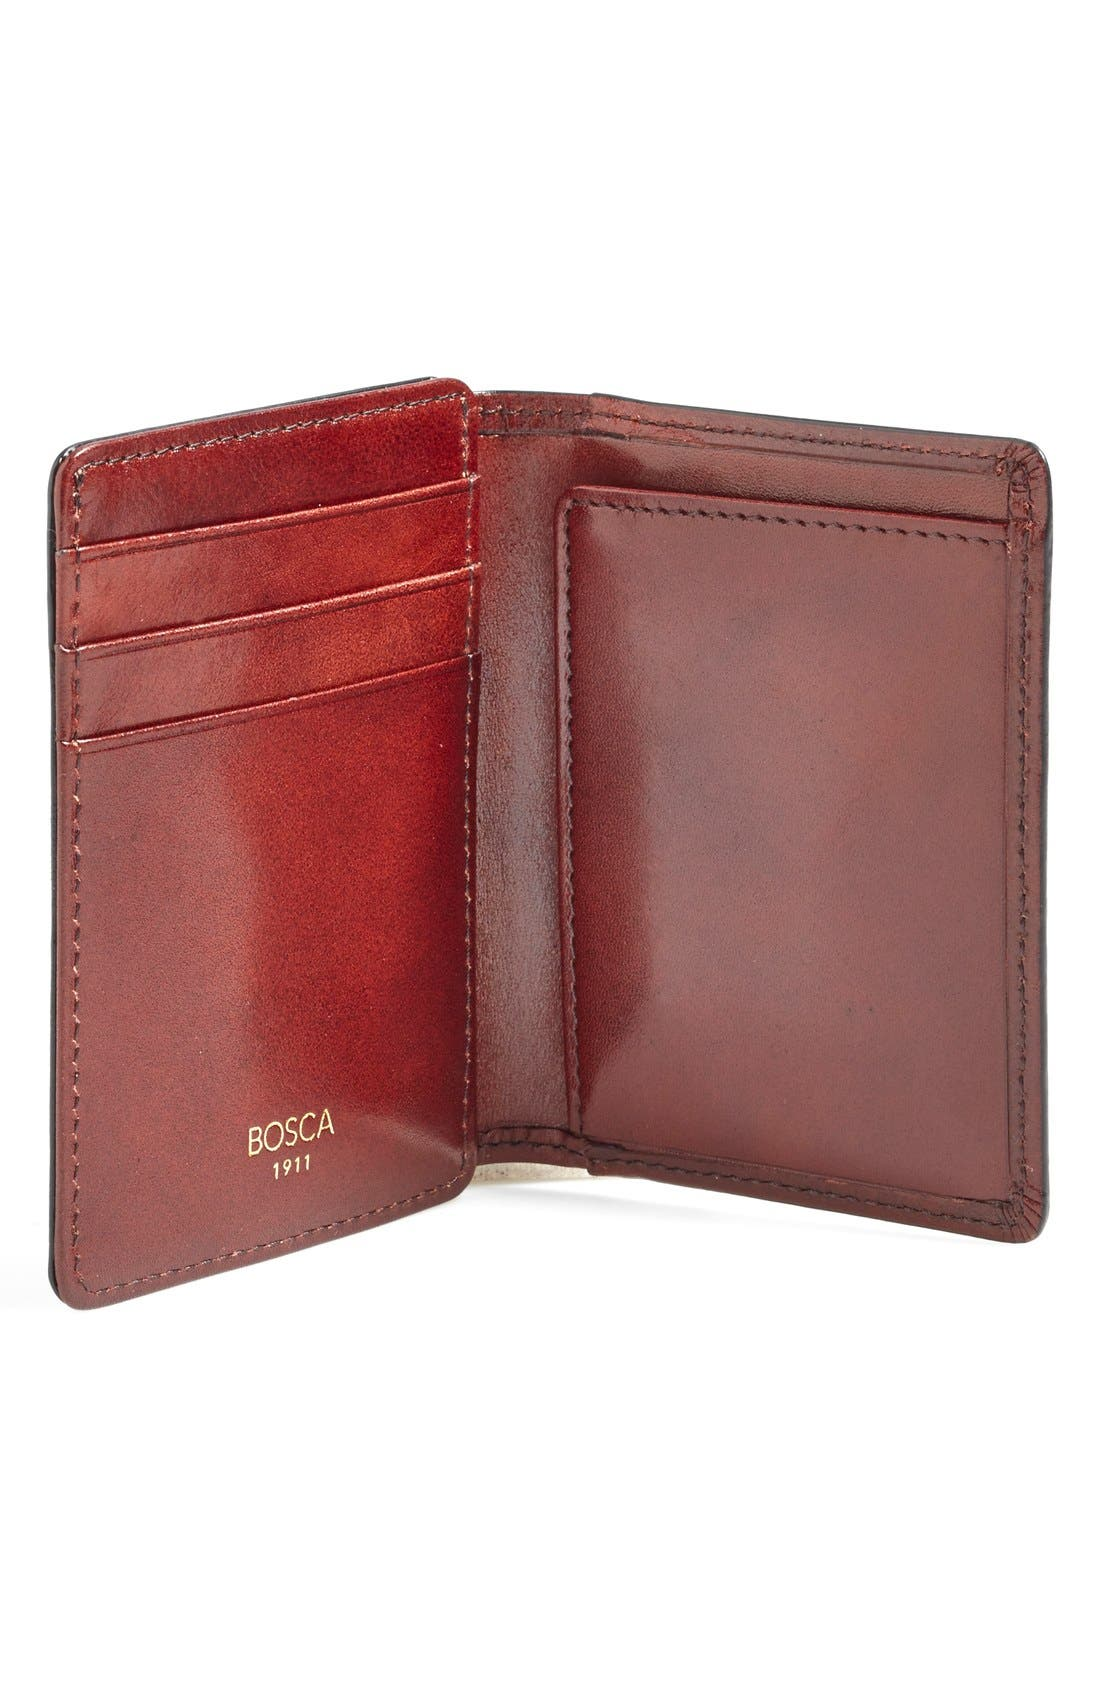 'Old Leather' Front Pocket ID Wallet,                             Alternate thumbnail 3, color,                             DARK BROWN